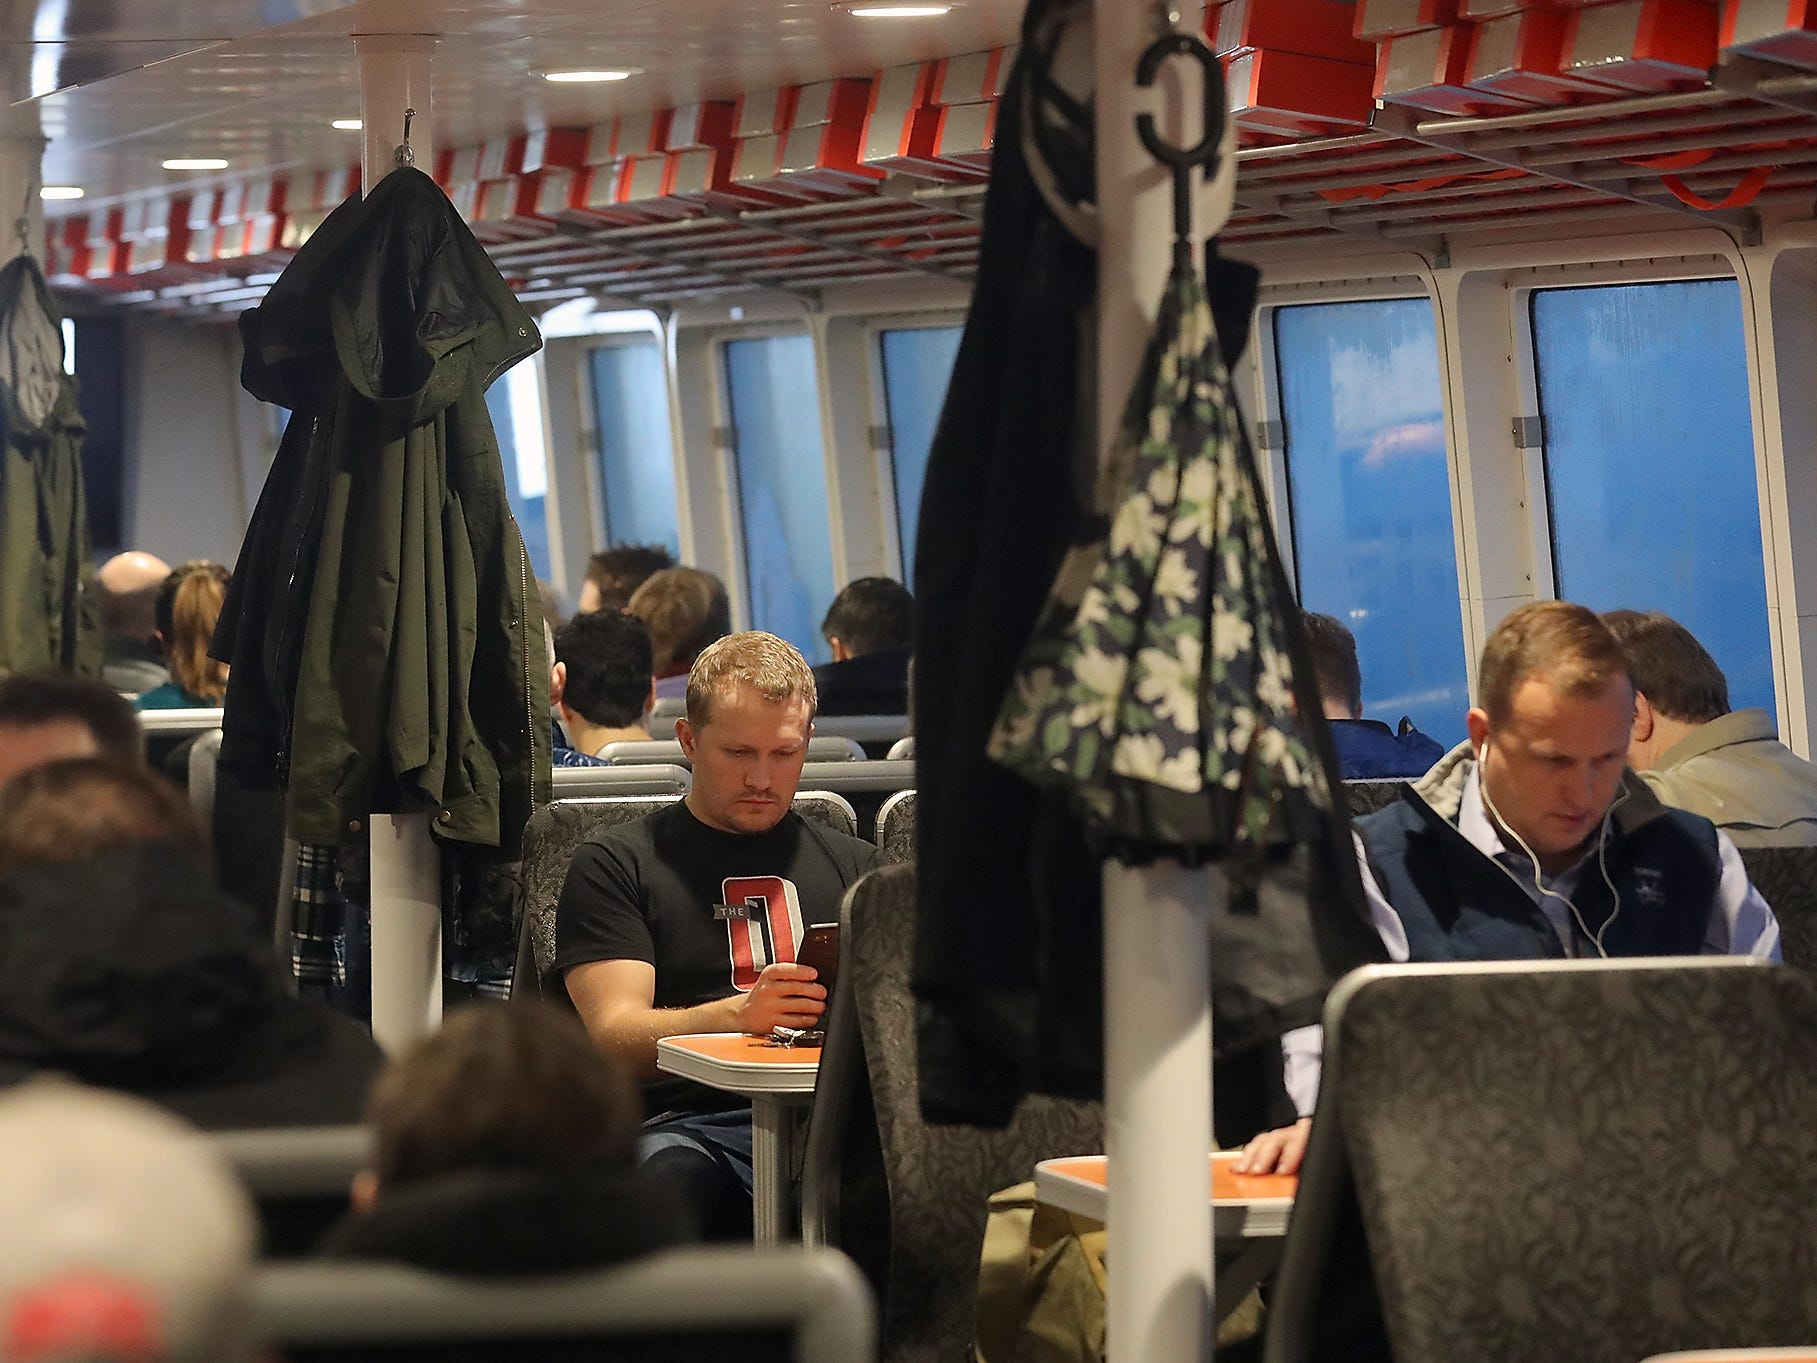 Peter Brown-Hayes looks at his phone while riding the M/V Finest from Kingston to Seattle on Monday, November 26, 2018.